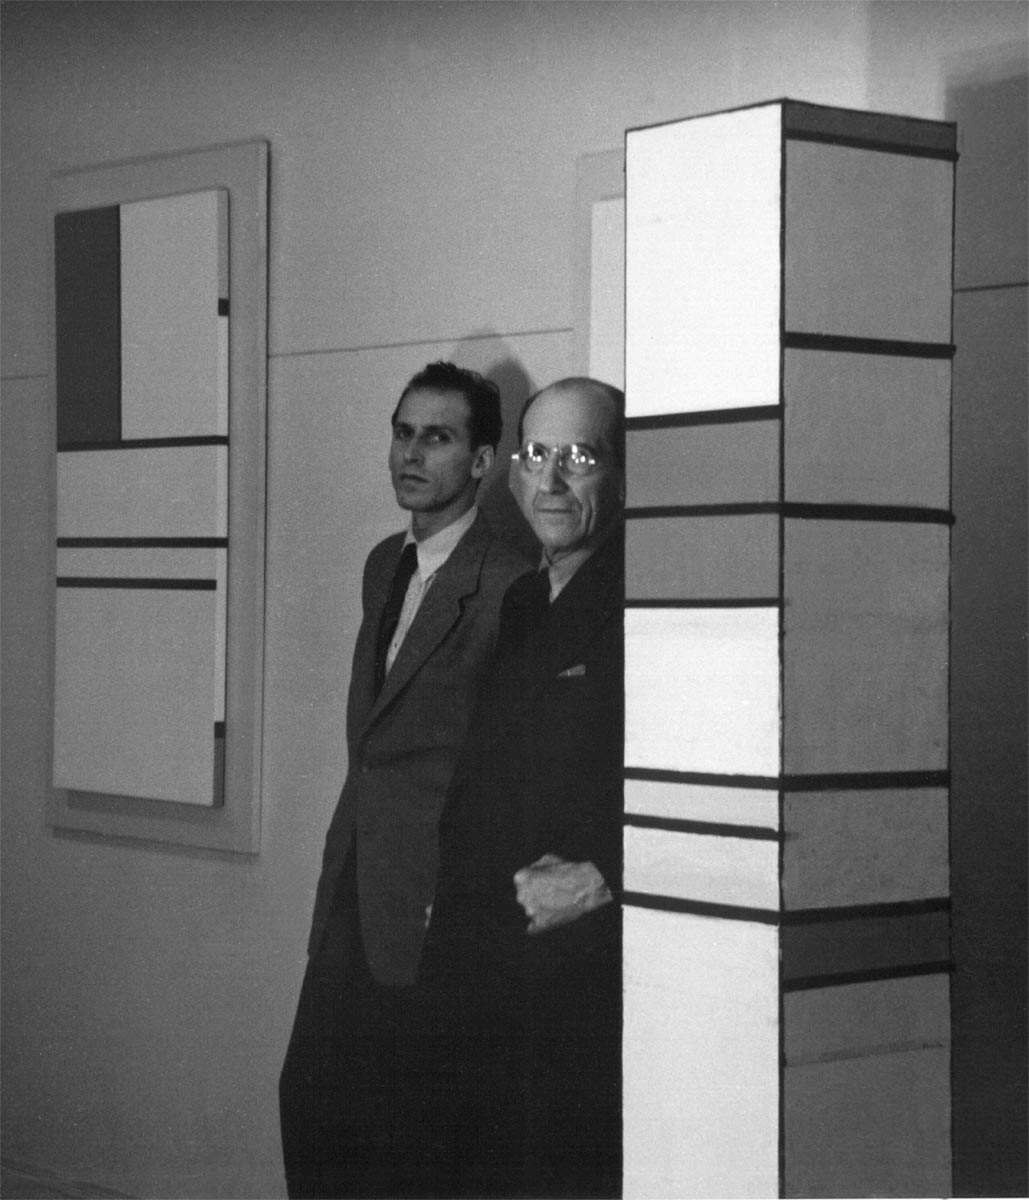 Harry-Holtzman-and-Piet-Mondrian-in-Holtzman-studio-New-York-City-1941